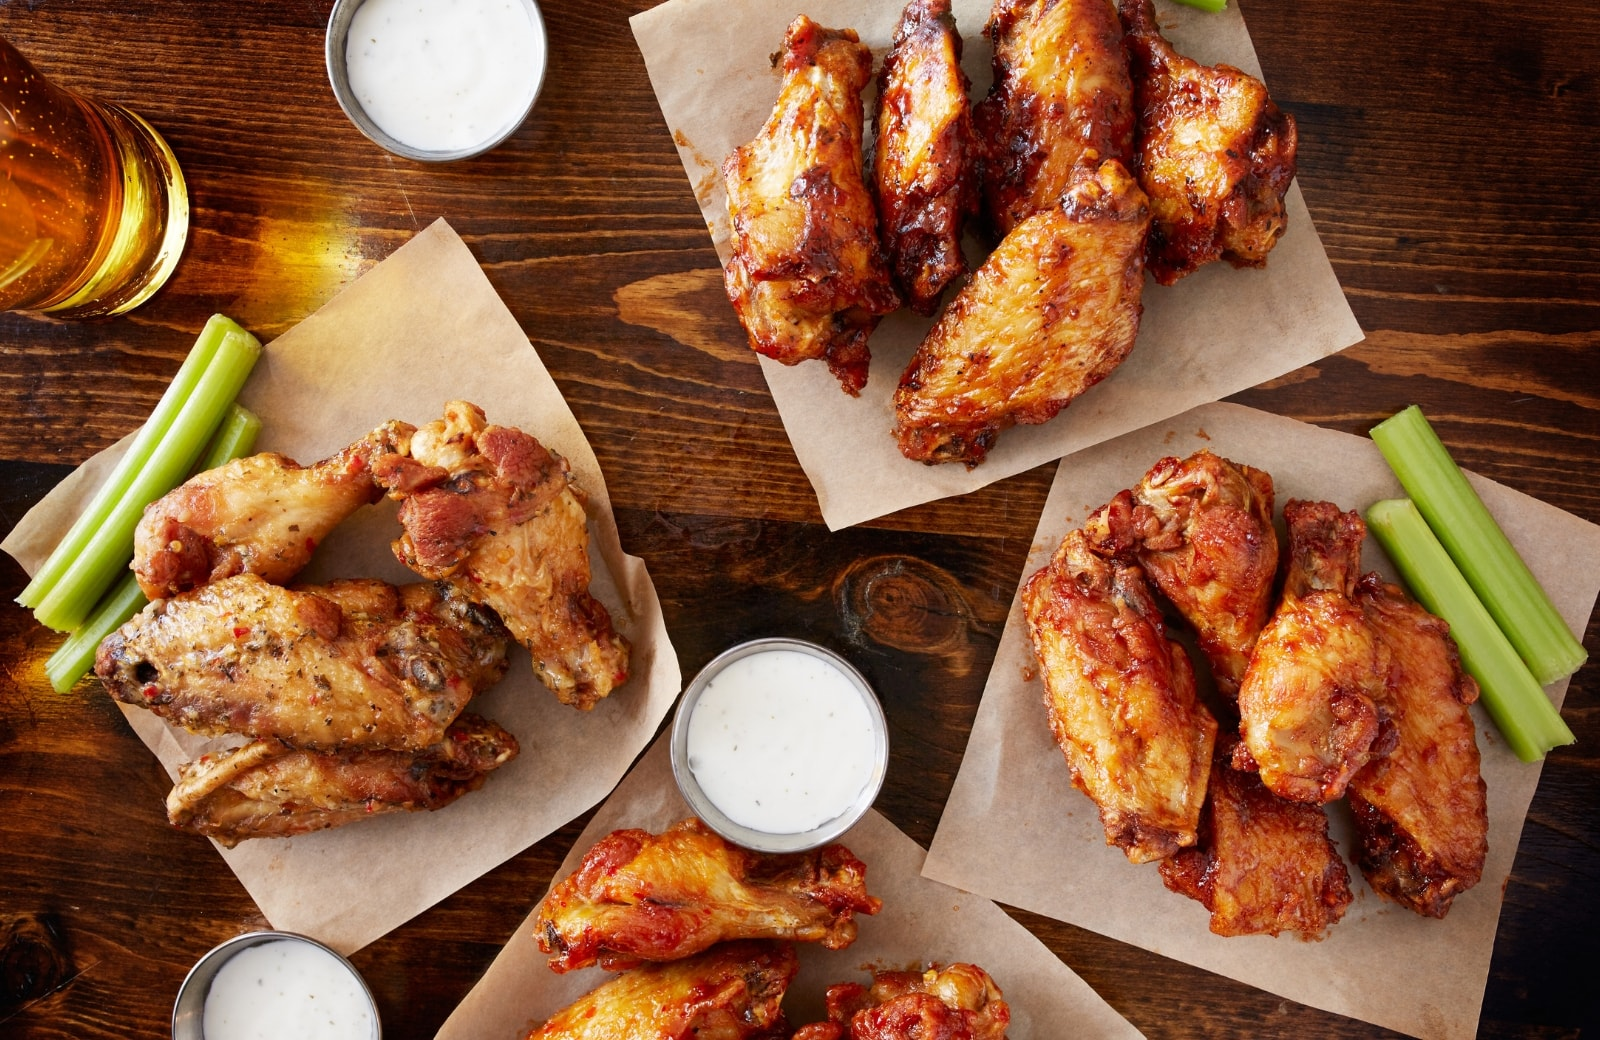 plates of chicken wings